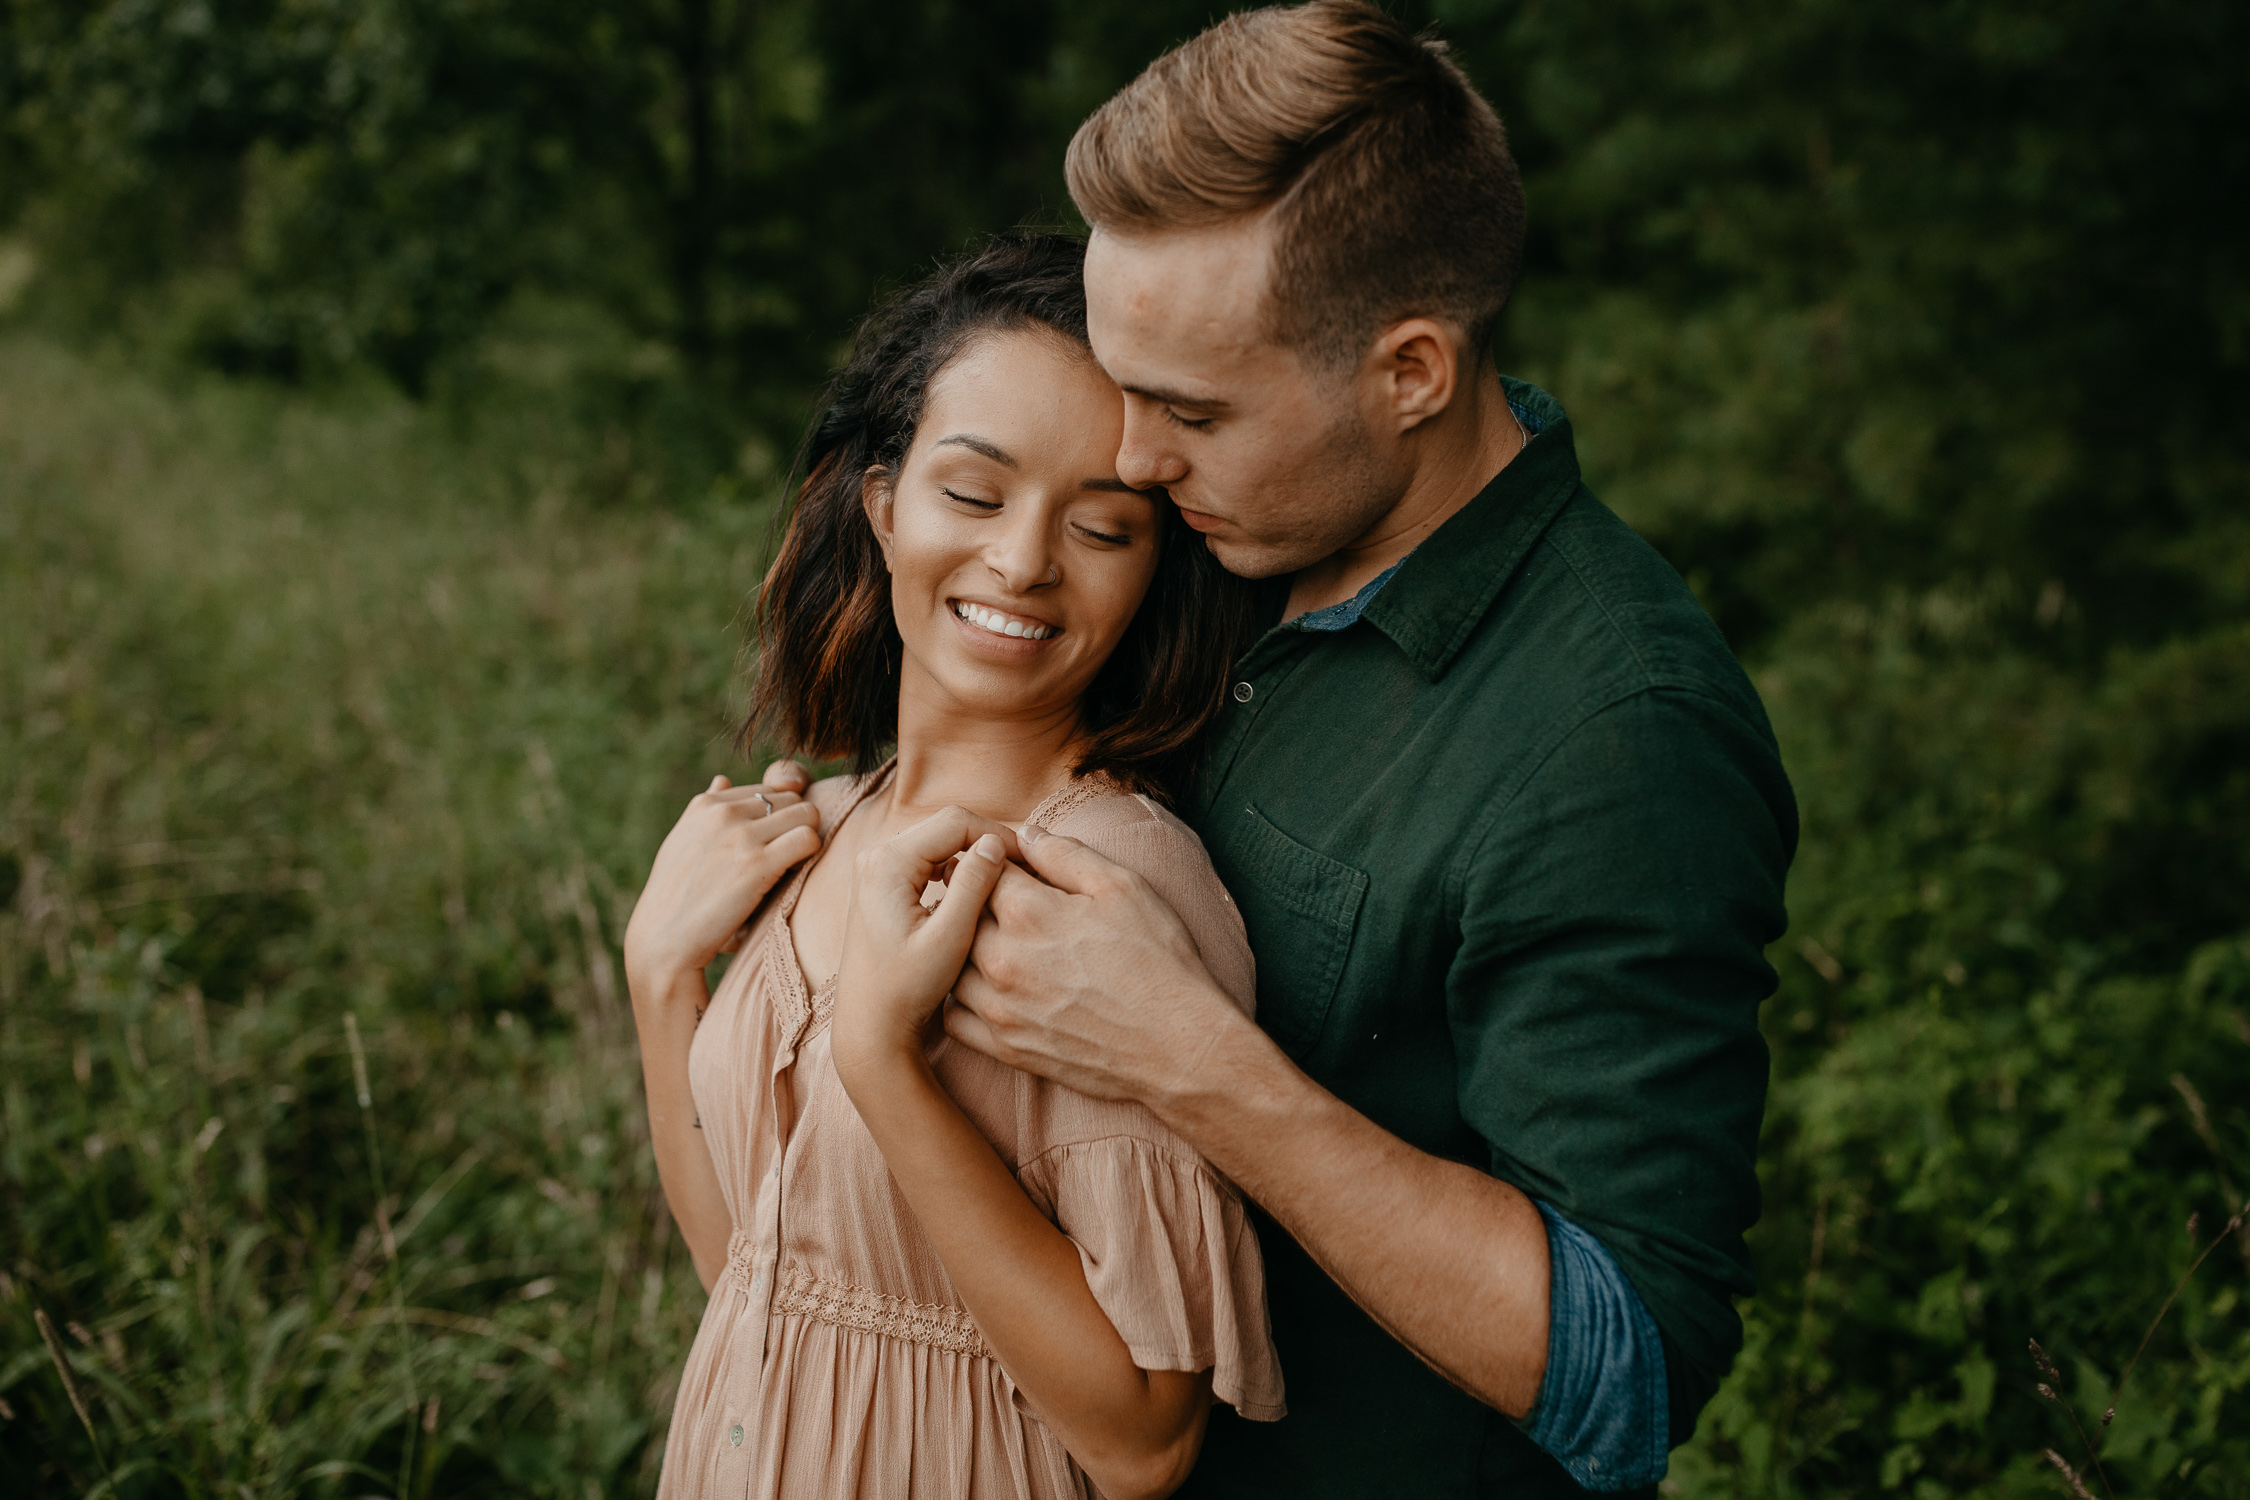 ariannamtorres and isaac engagement session at cades cove smoky mountains elopement-60.jpg